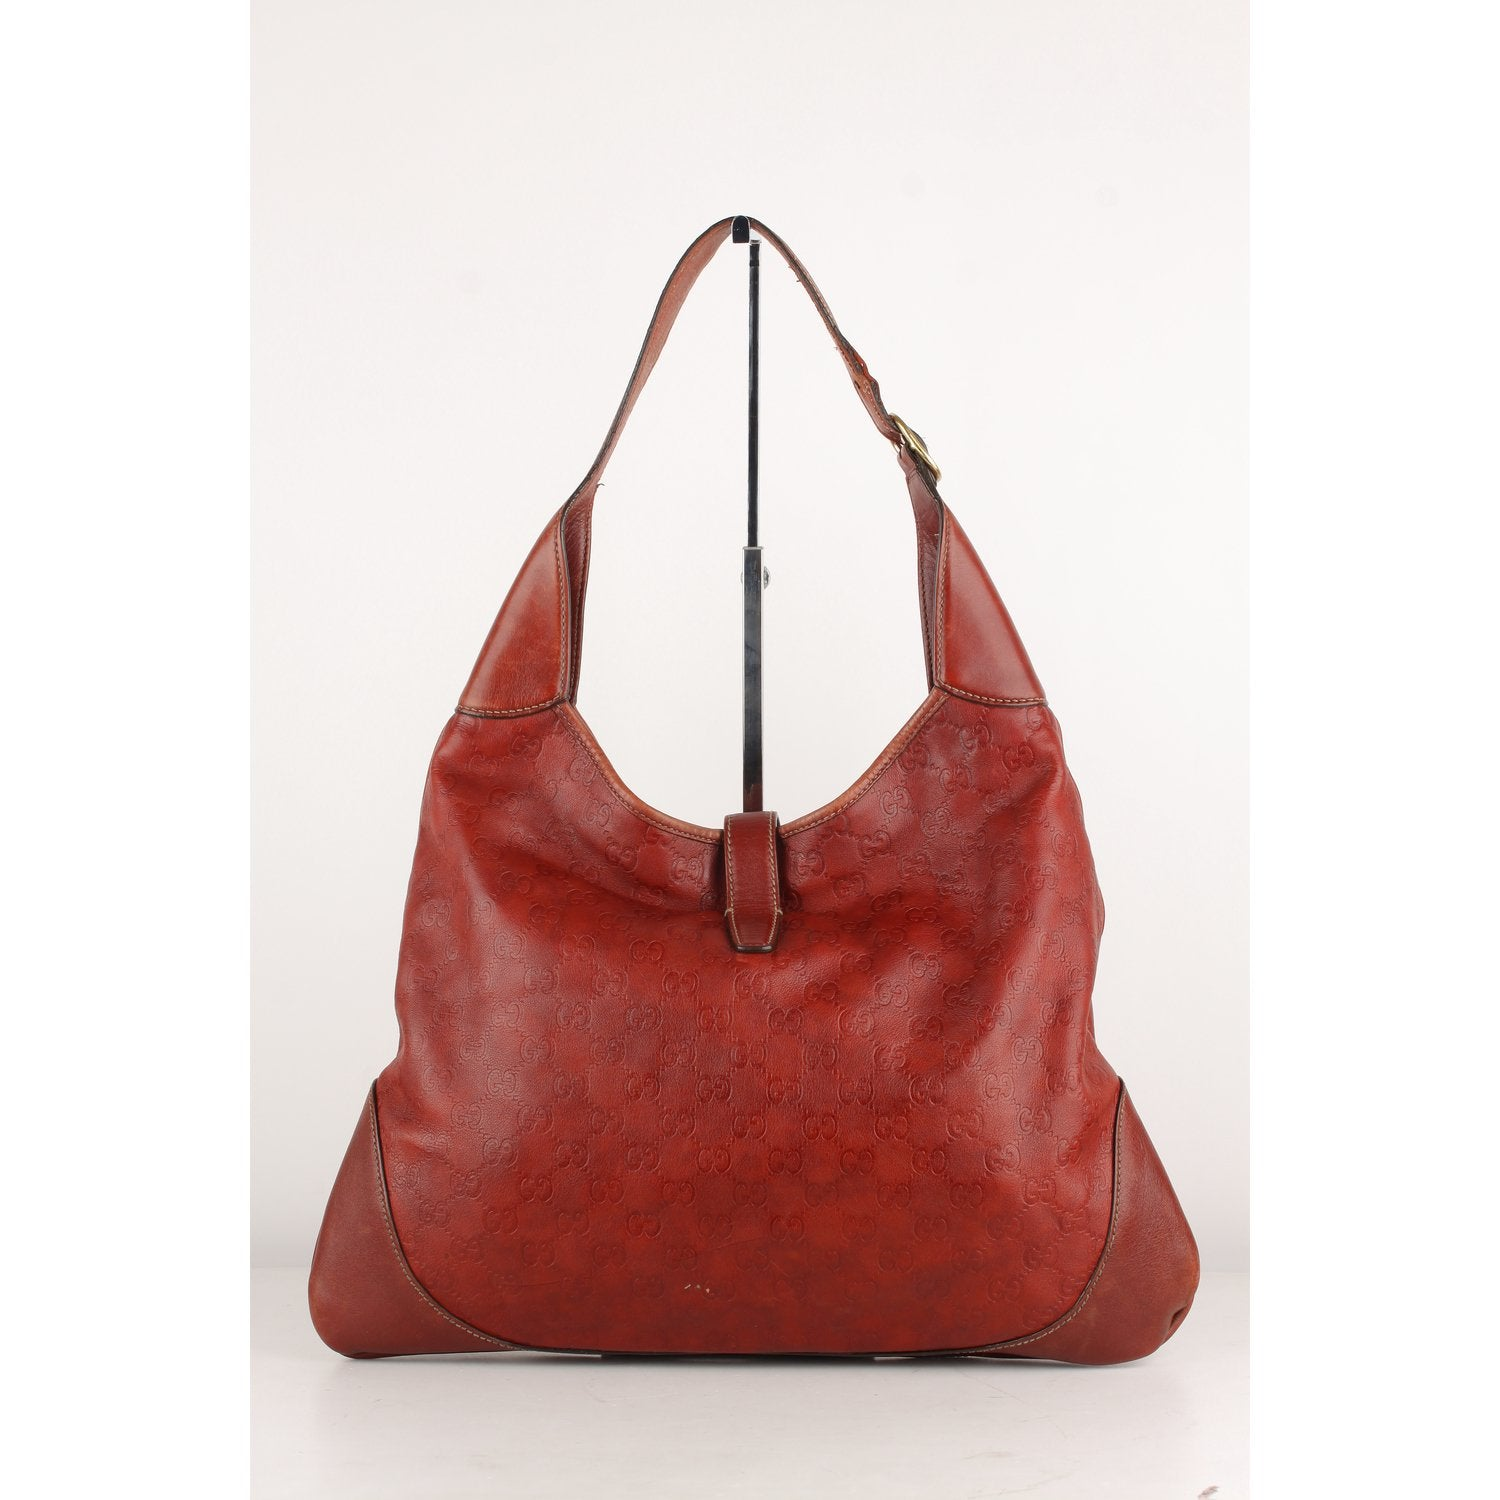 5831542e114 Enjoy Gucci Jackie O Bouvier Hobo Bag at OPHERTYCIOCCI – OPHERTY ...